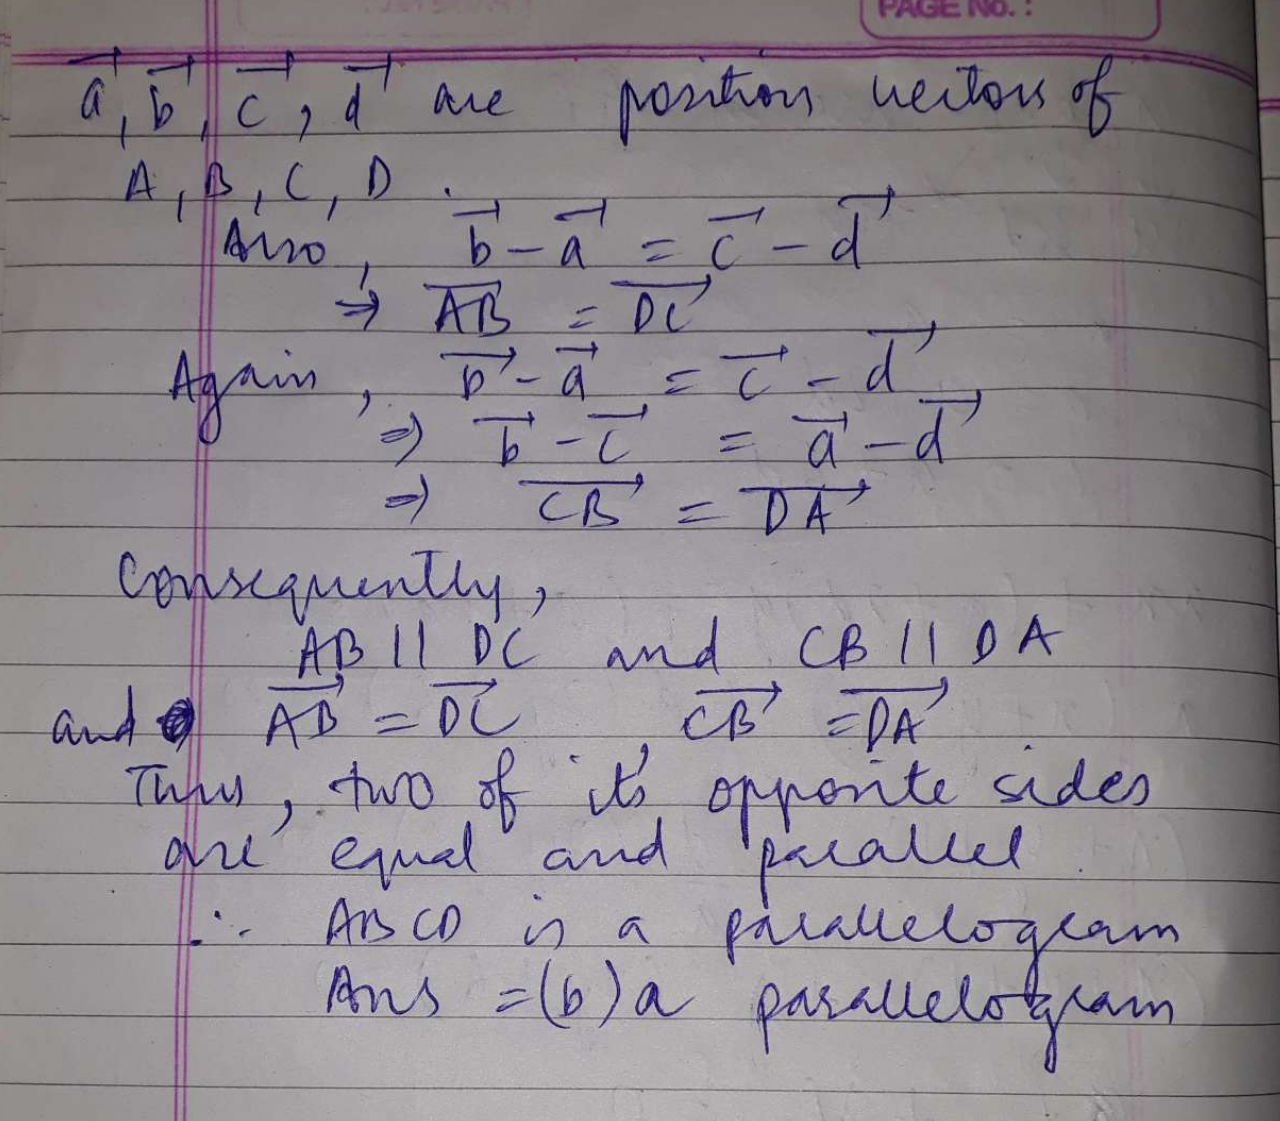 If a, b, c, d are position vectors of points A, B, C & D respectively such that b-a=c-d then ABCD will be